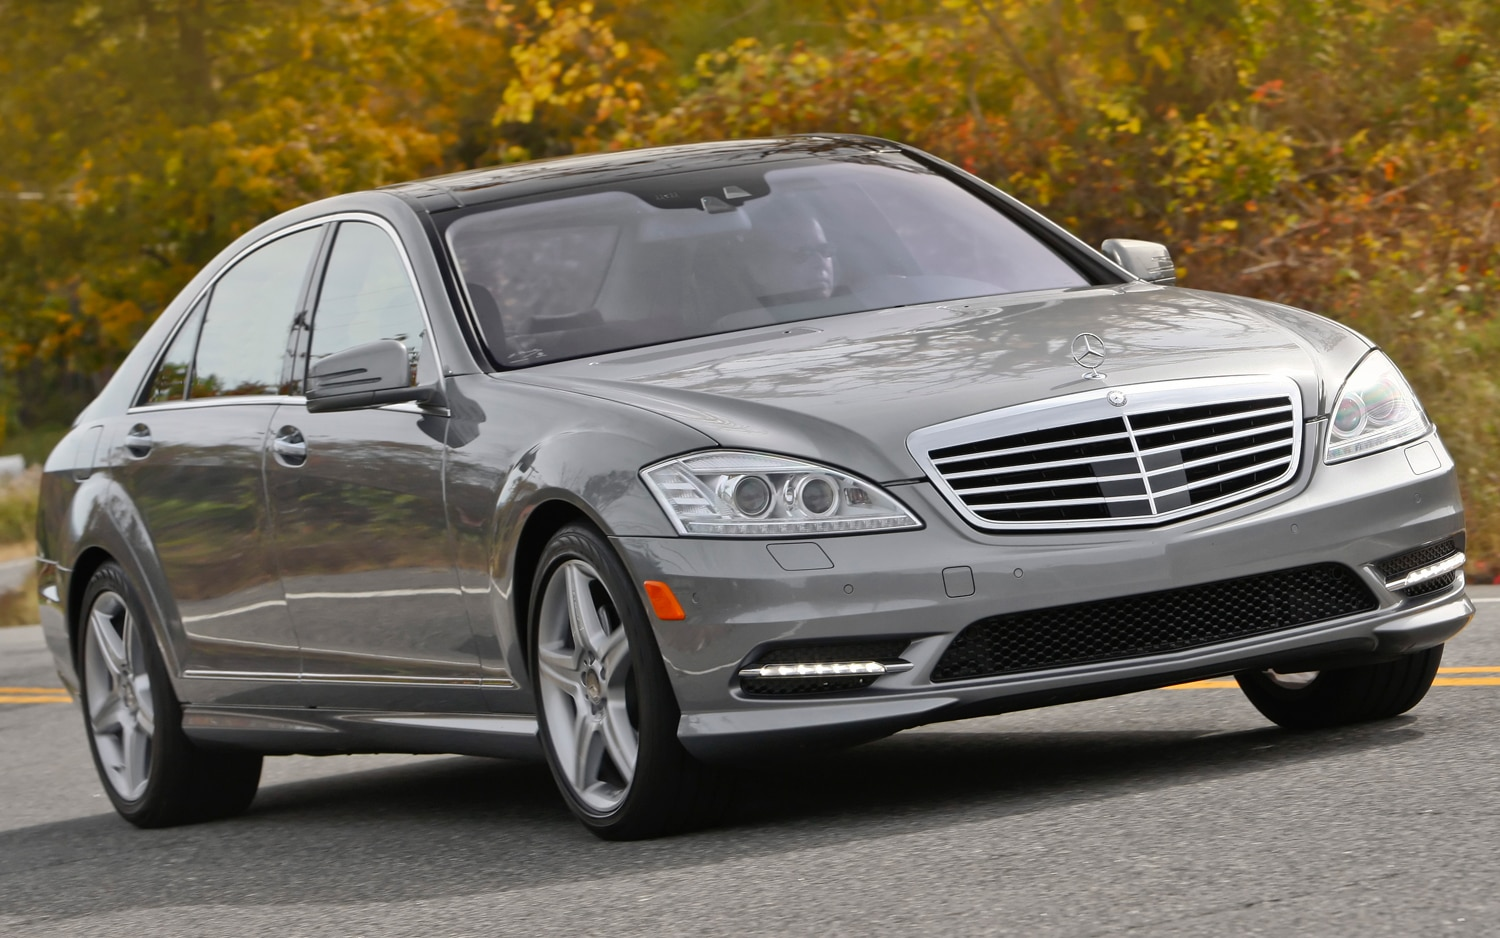 Recall central mercedes benz recalls 5800 vehicles for for Recalls on mercedes benz